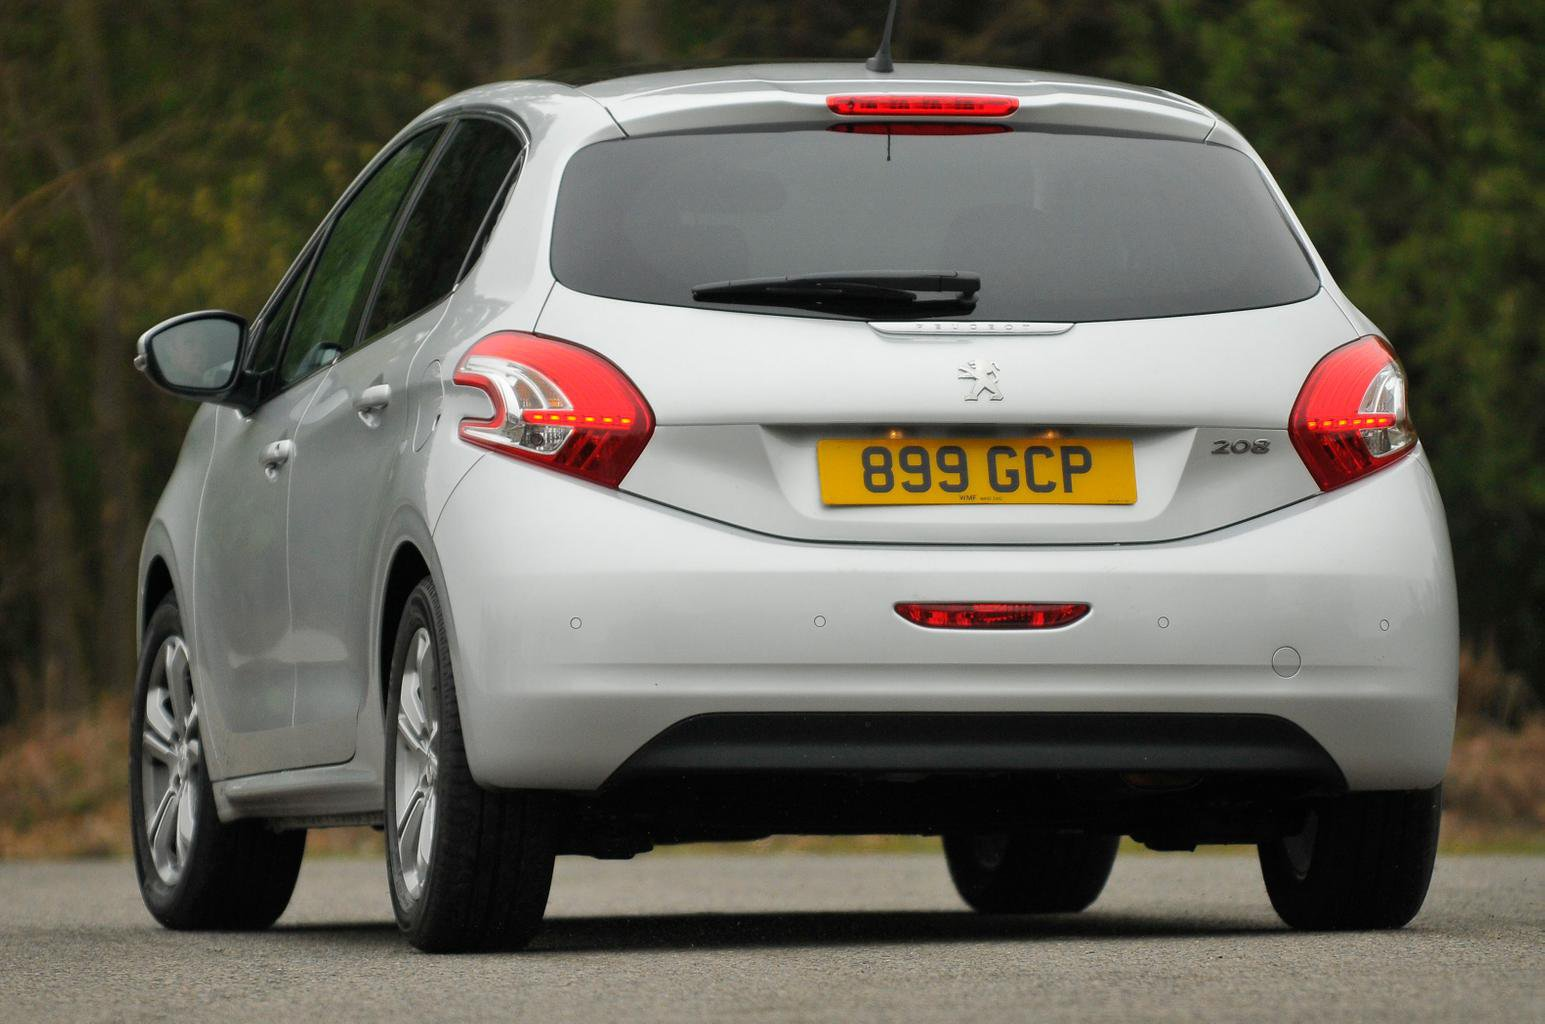 Used test: Ford Fiesta vs Volkswagen Polo vs Peugeot 208 vs Kia Rio